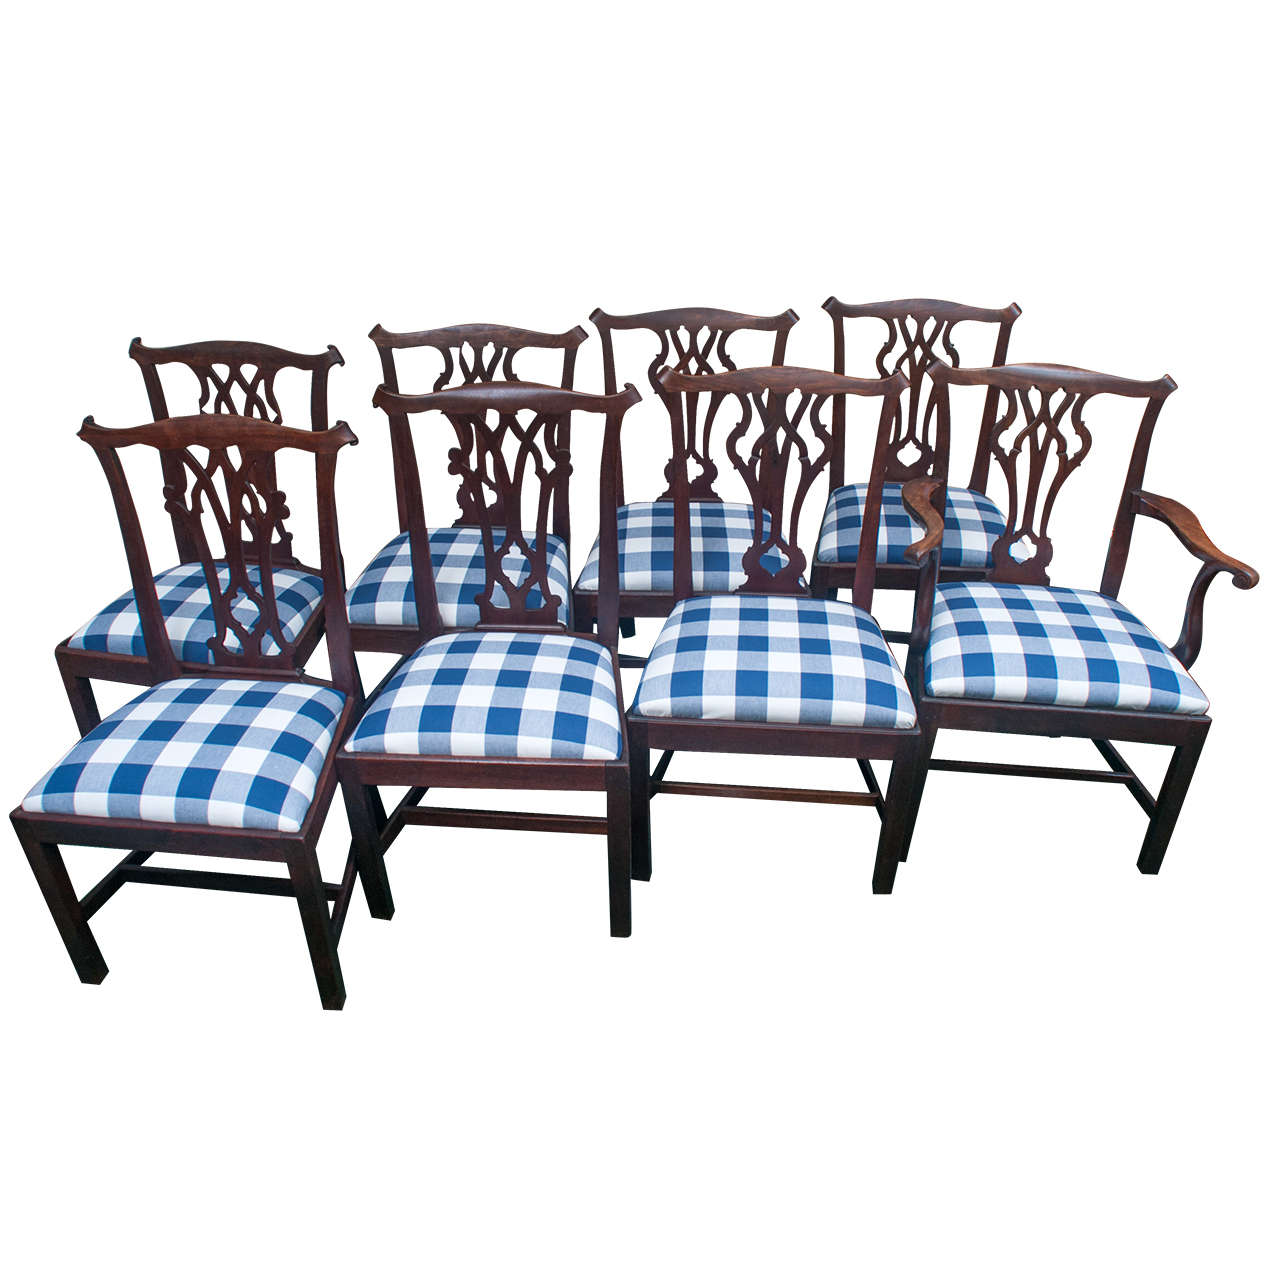 assembled set of country chippendale chairs at 1stdibs. Black Bedroom Furniture Sets. Home Design Ideas